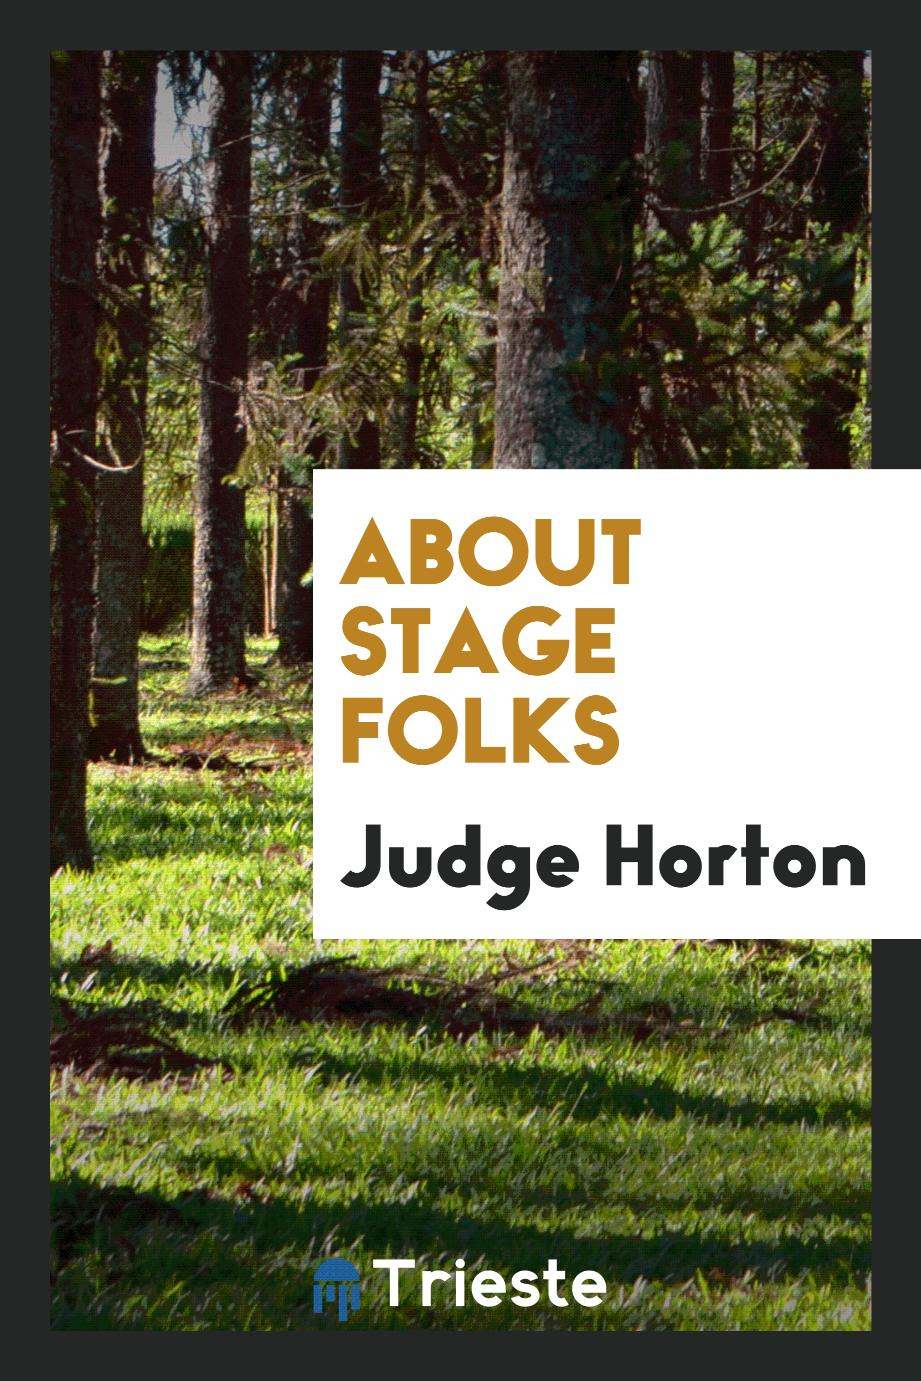 About Stage Folks